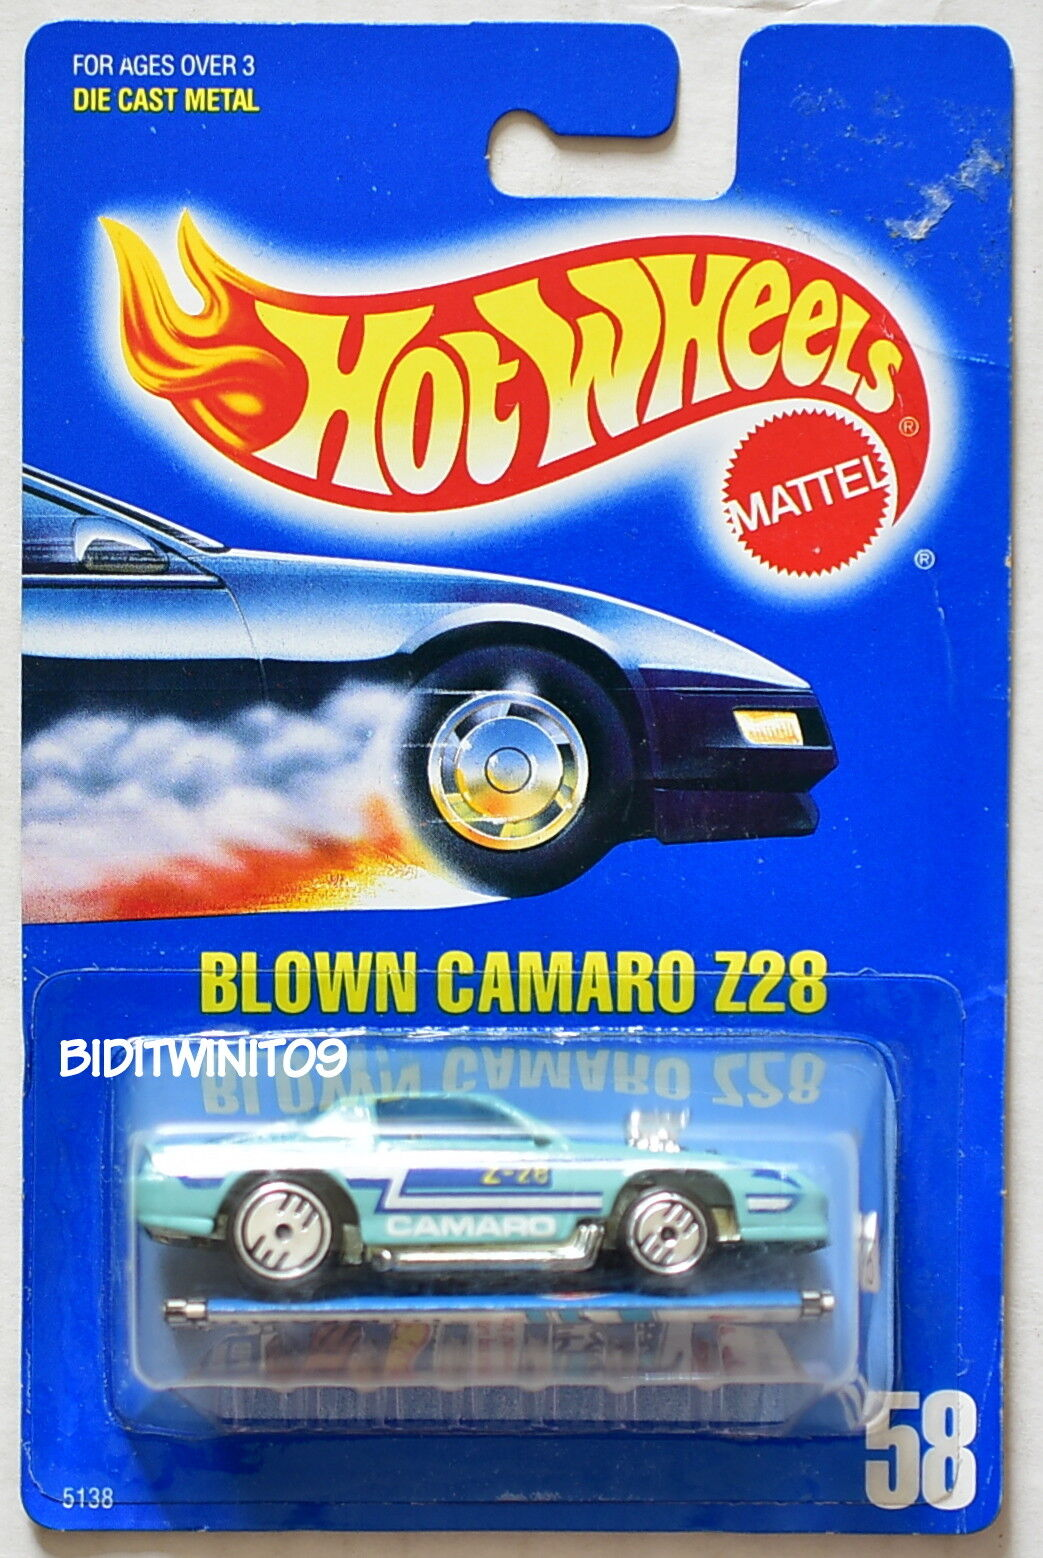 HOT WHEELS 1989 blueE CARD BLOWN CAMARO Z28 DARK blueE TAMPO WITH PAMPHLET 17